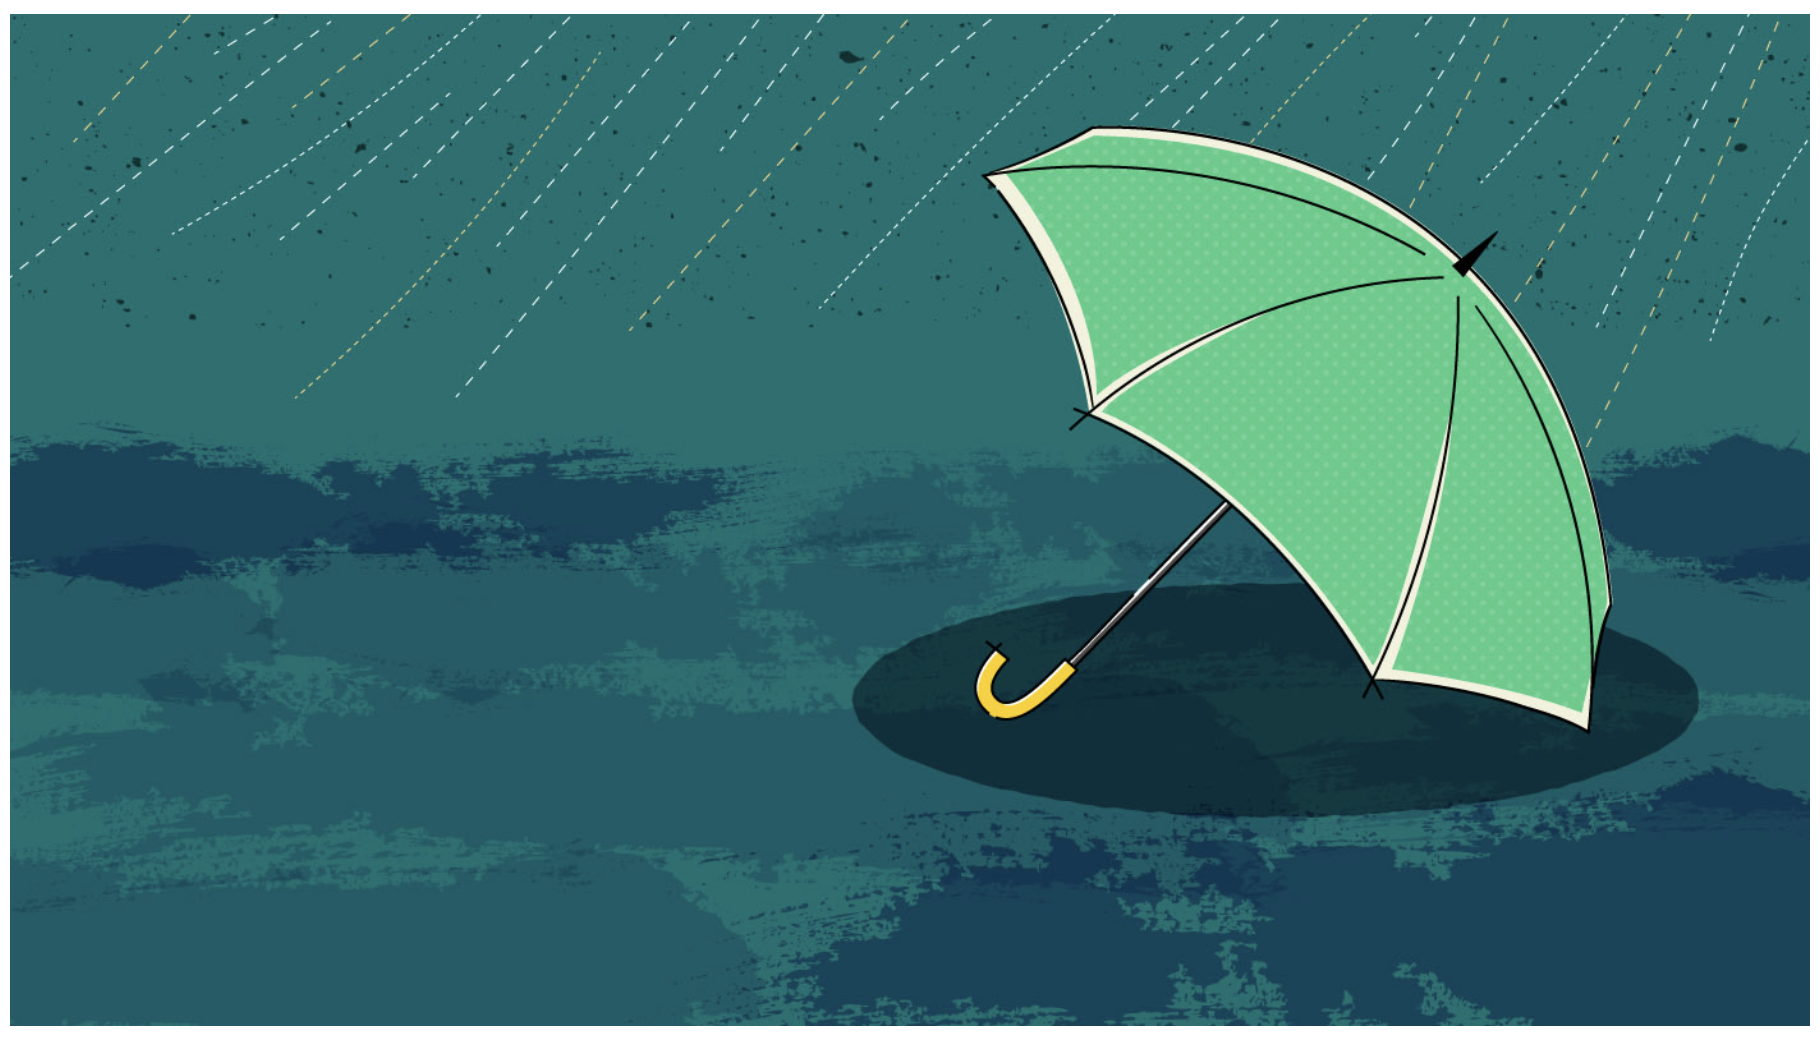 Umbrella lying on its side in the rain - Vector illustration